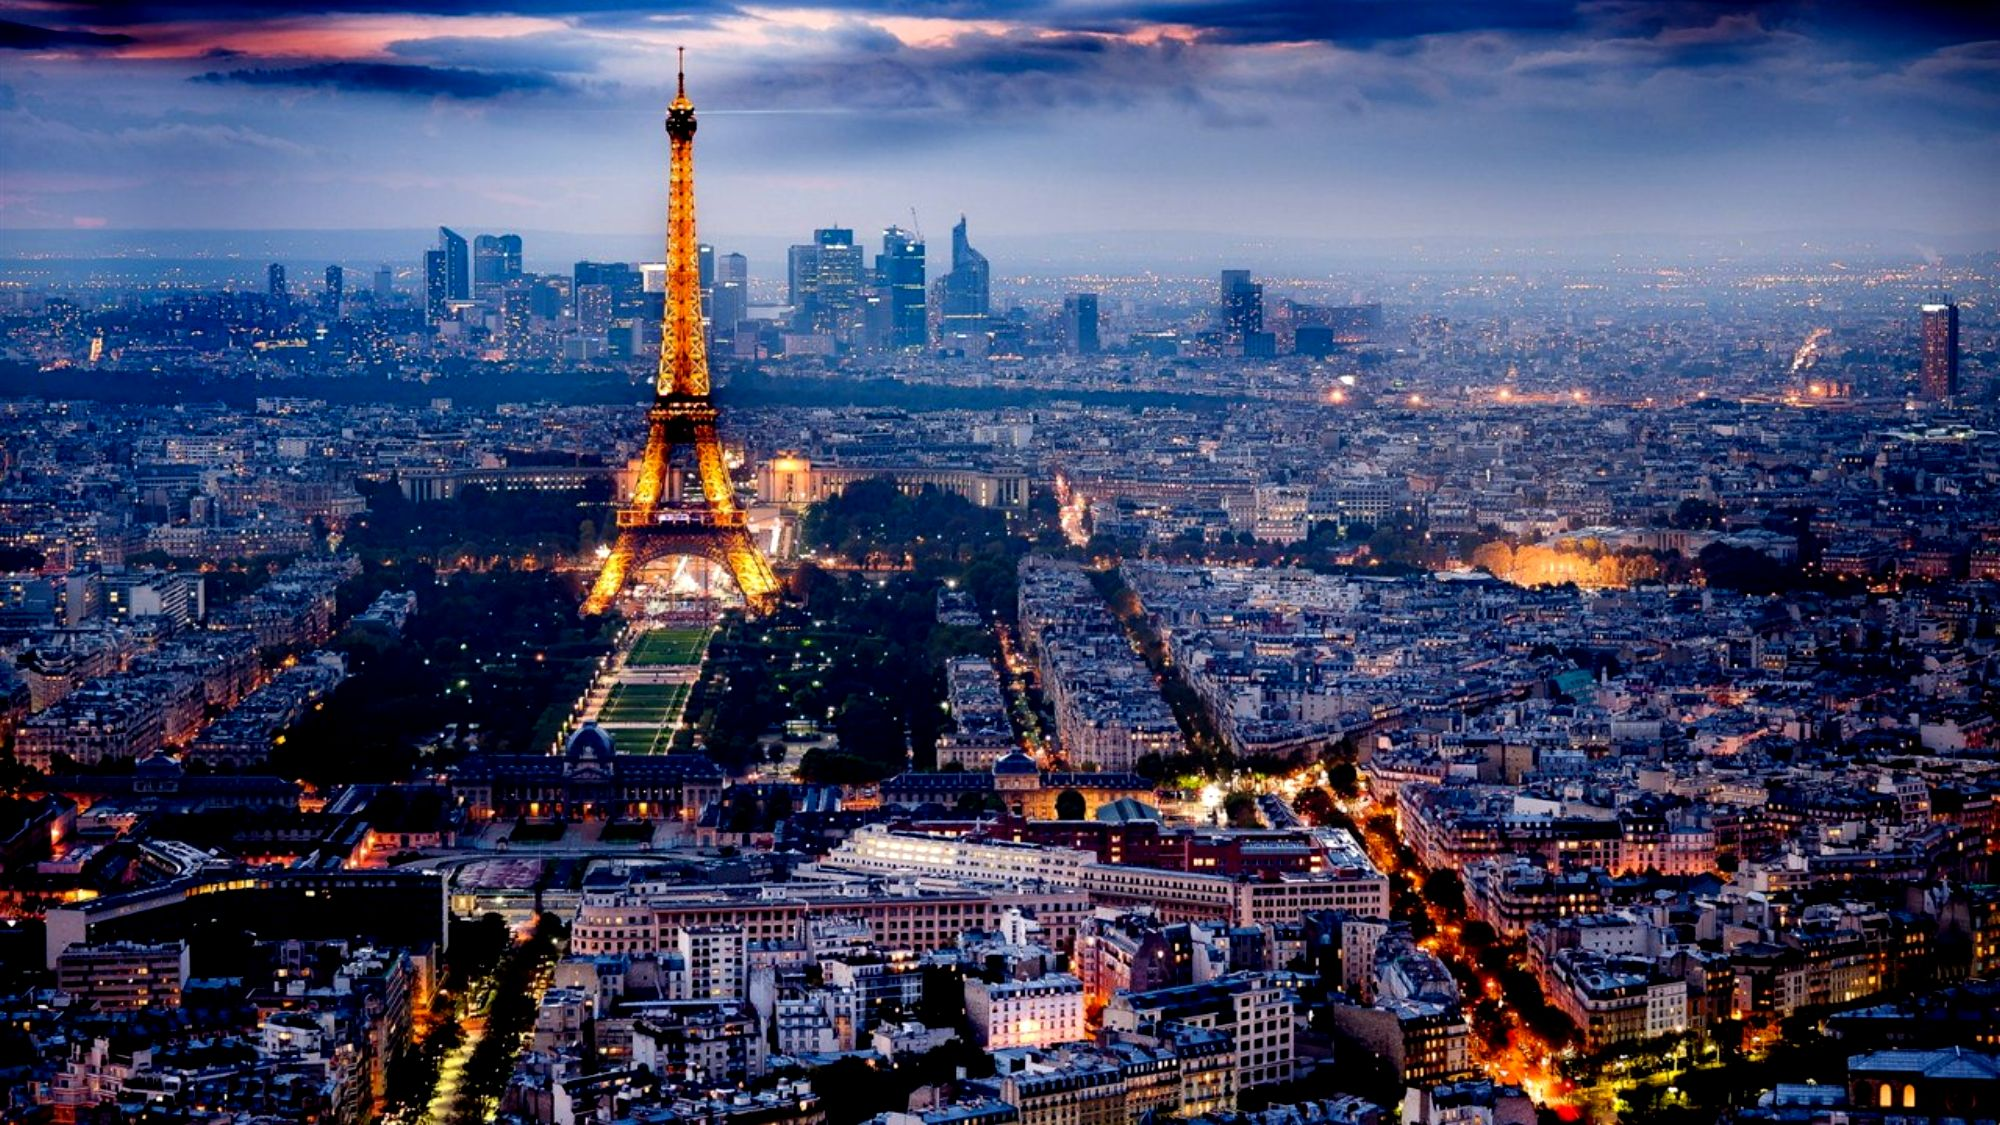 Paris In The Night Wallpaper Desktop